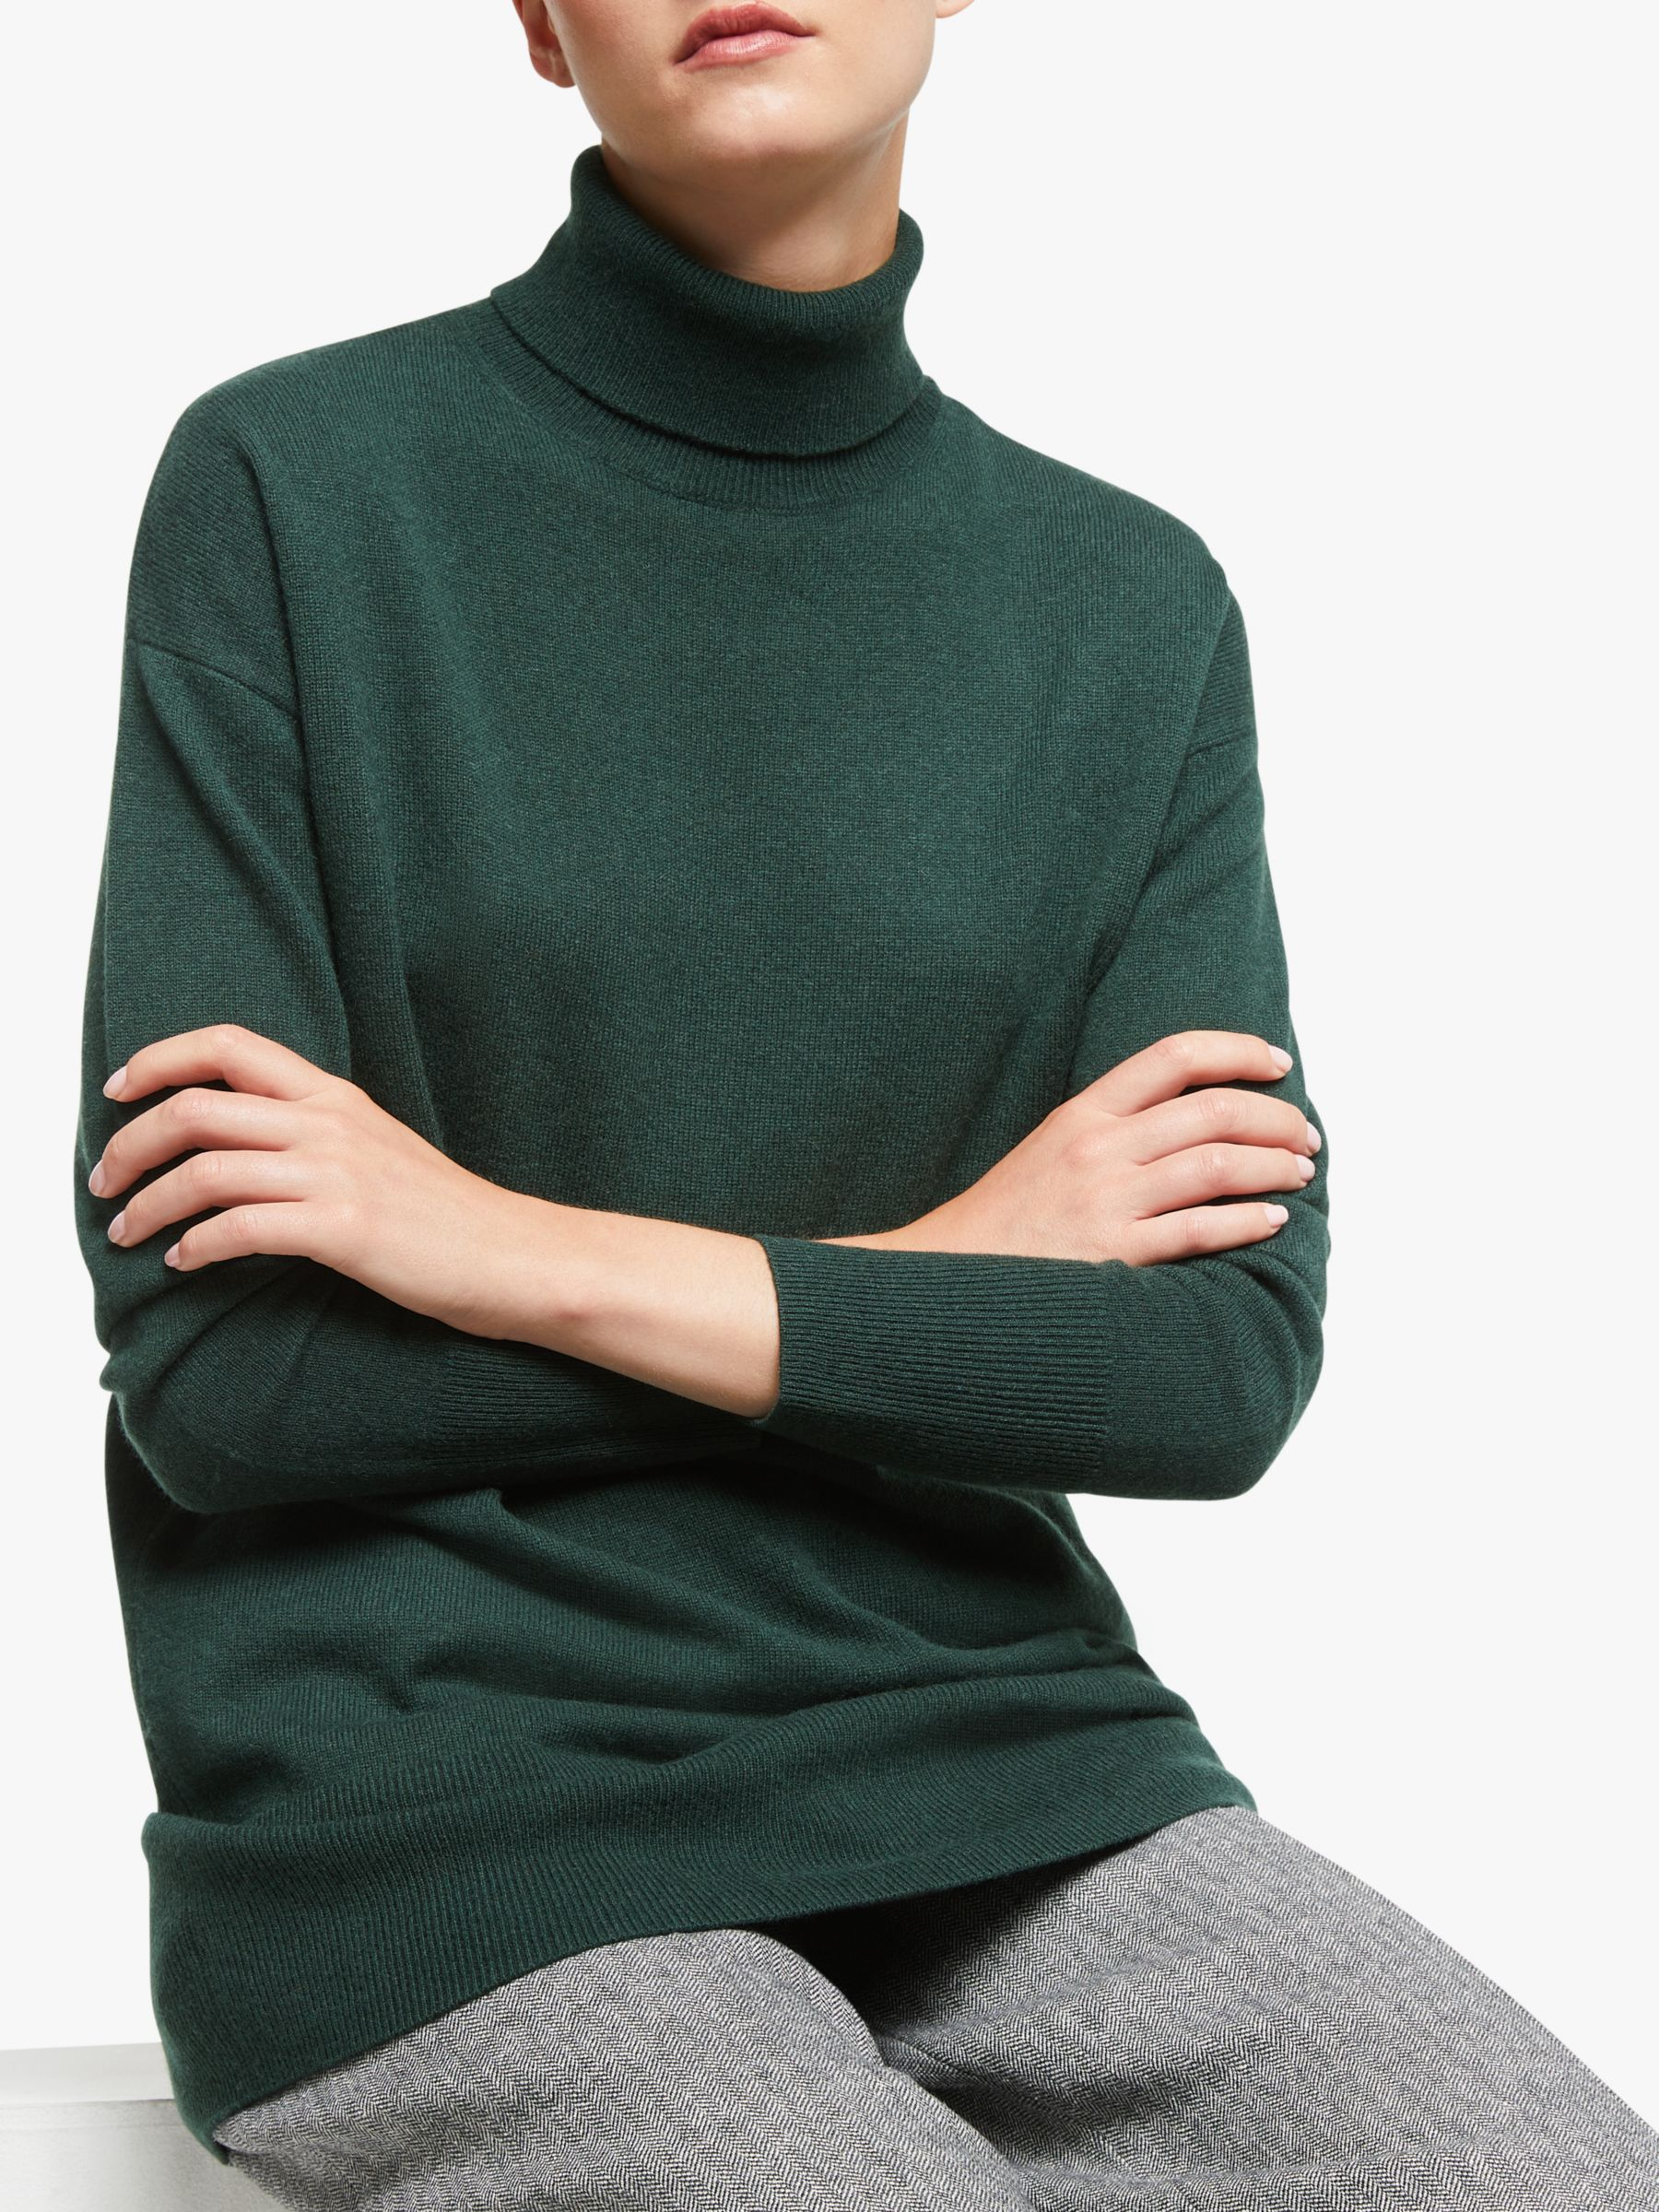 John Lewis & Partners Cashmere Relaxed Roll Neck Sweater at